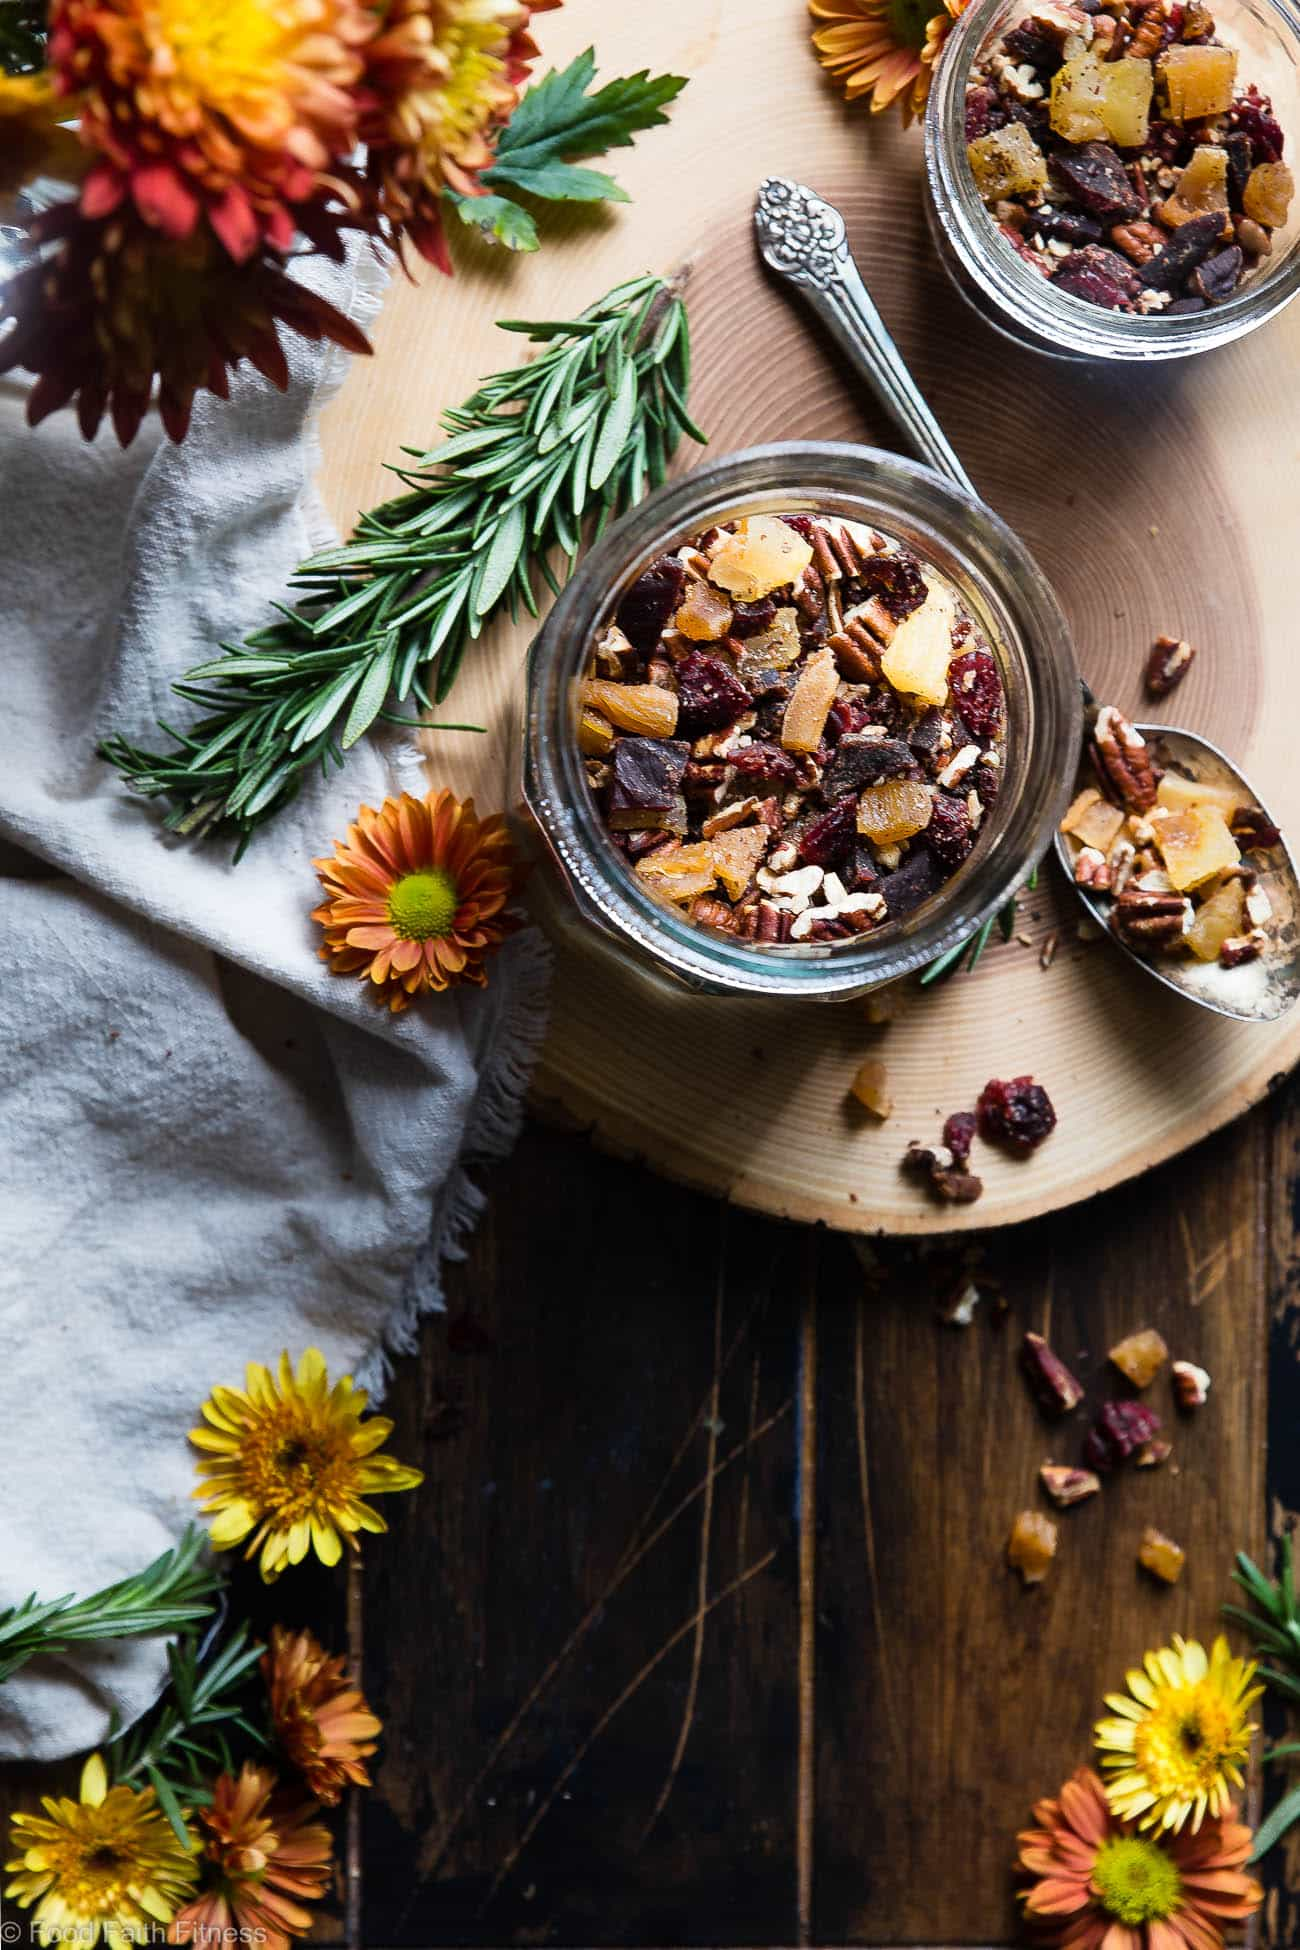 Protein Packed Fall Trail Mix - This quick and easy fall trail mix recipe only uses 6 ingredients and is secretly high in protein! It's a healthy gluten, grain and dairy free portable snack for busy days that is adult and kid friendly! | Foodfaithfitness.com | @FoodFaithFit